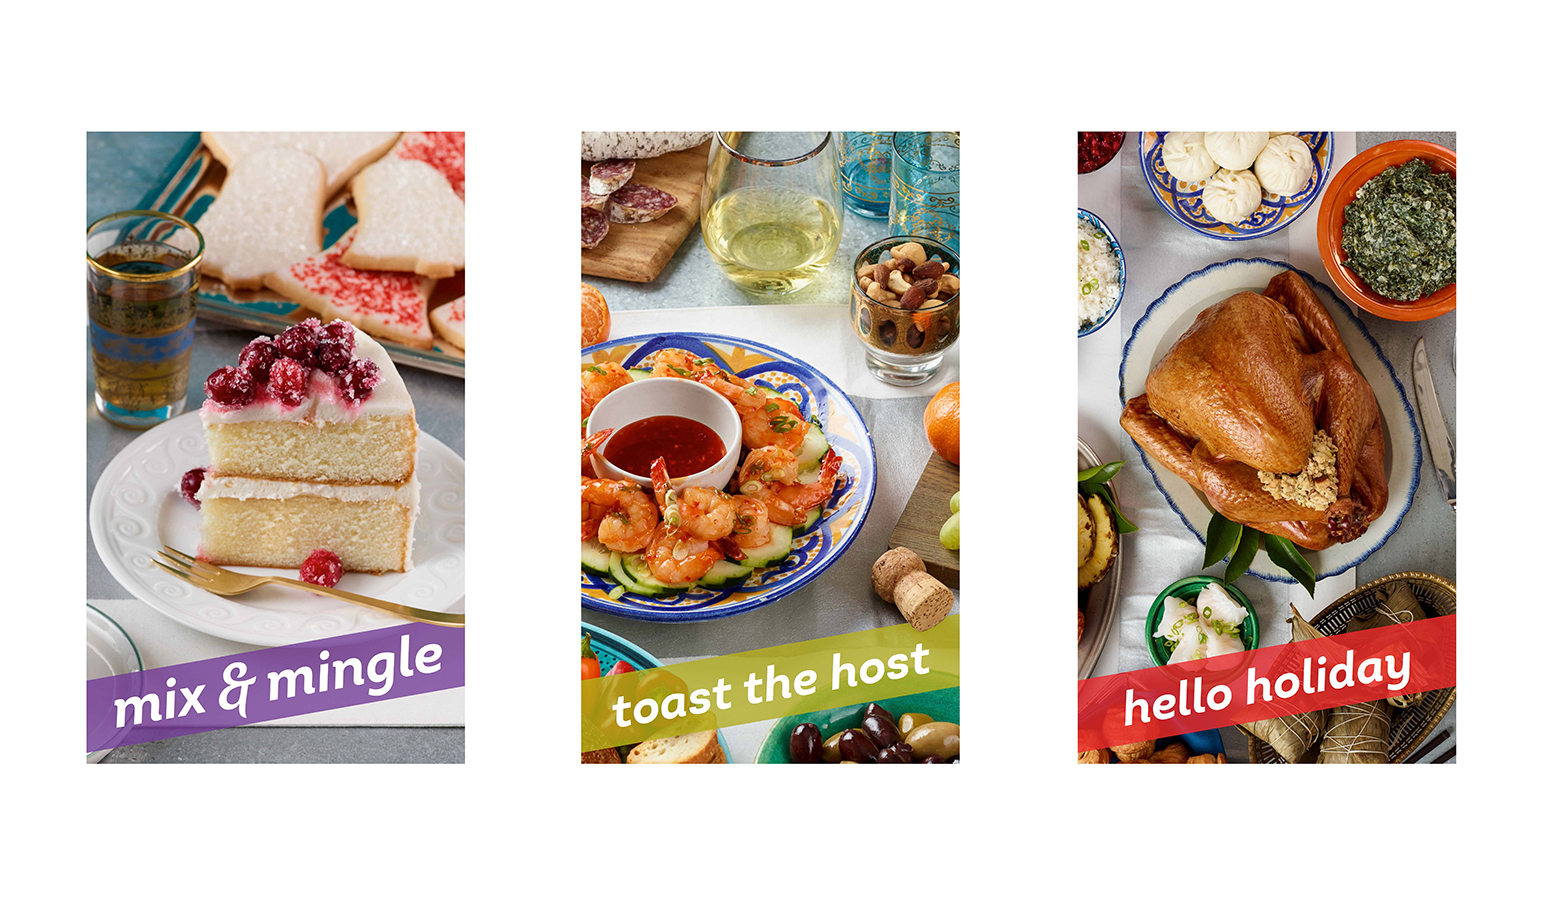 food-maxx-holiday-campaign-graphics